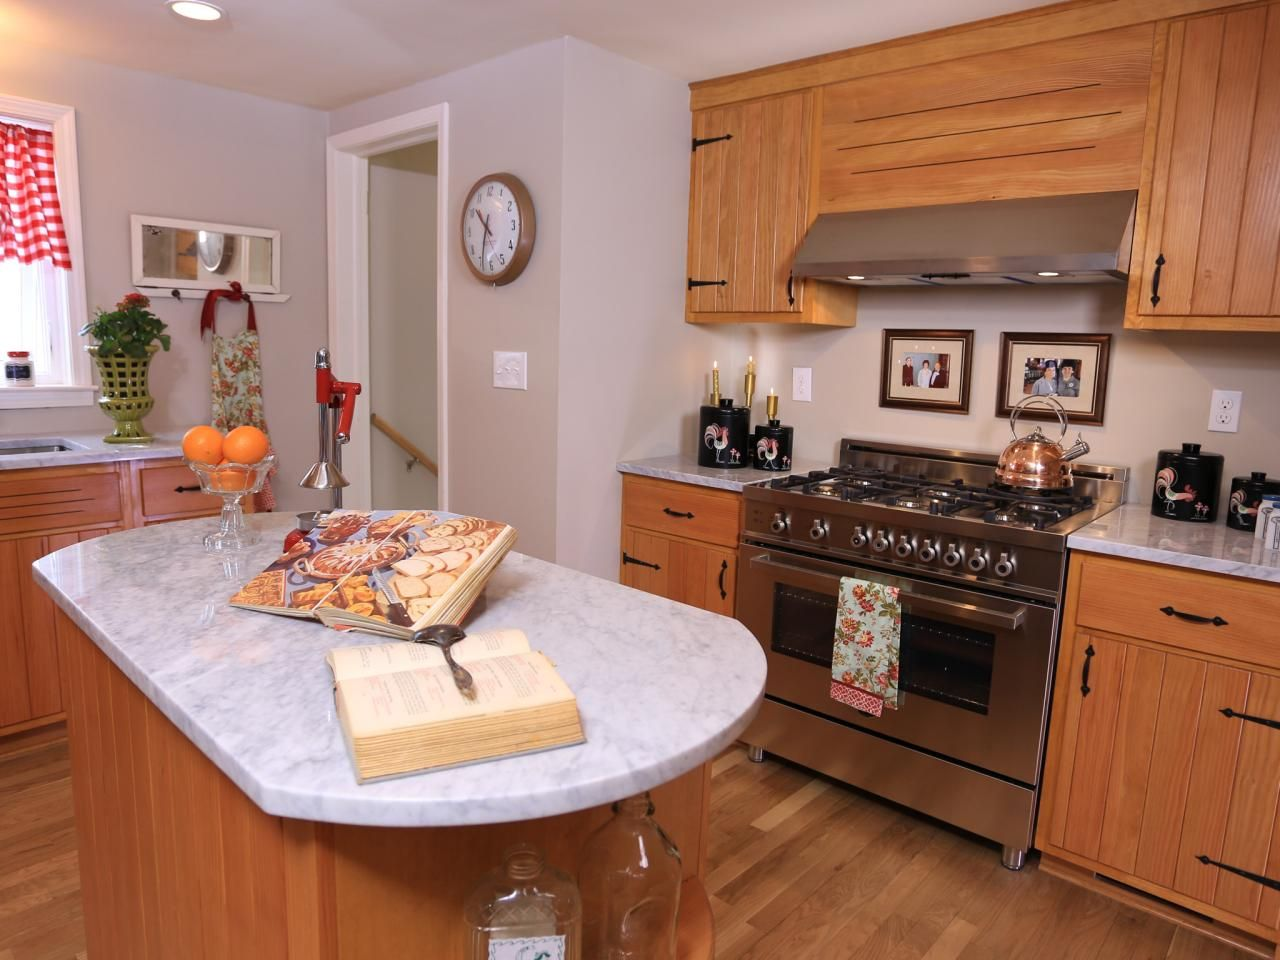 Uncategorized Nicole Curtis Kitchen Design in diy networks series rehab addict nicole curtis is saving historic houses one at